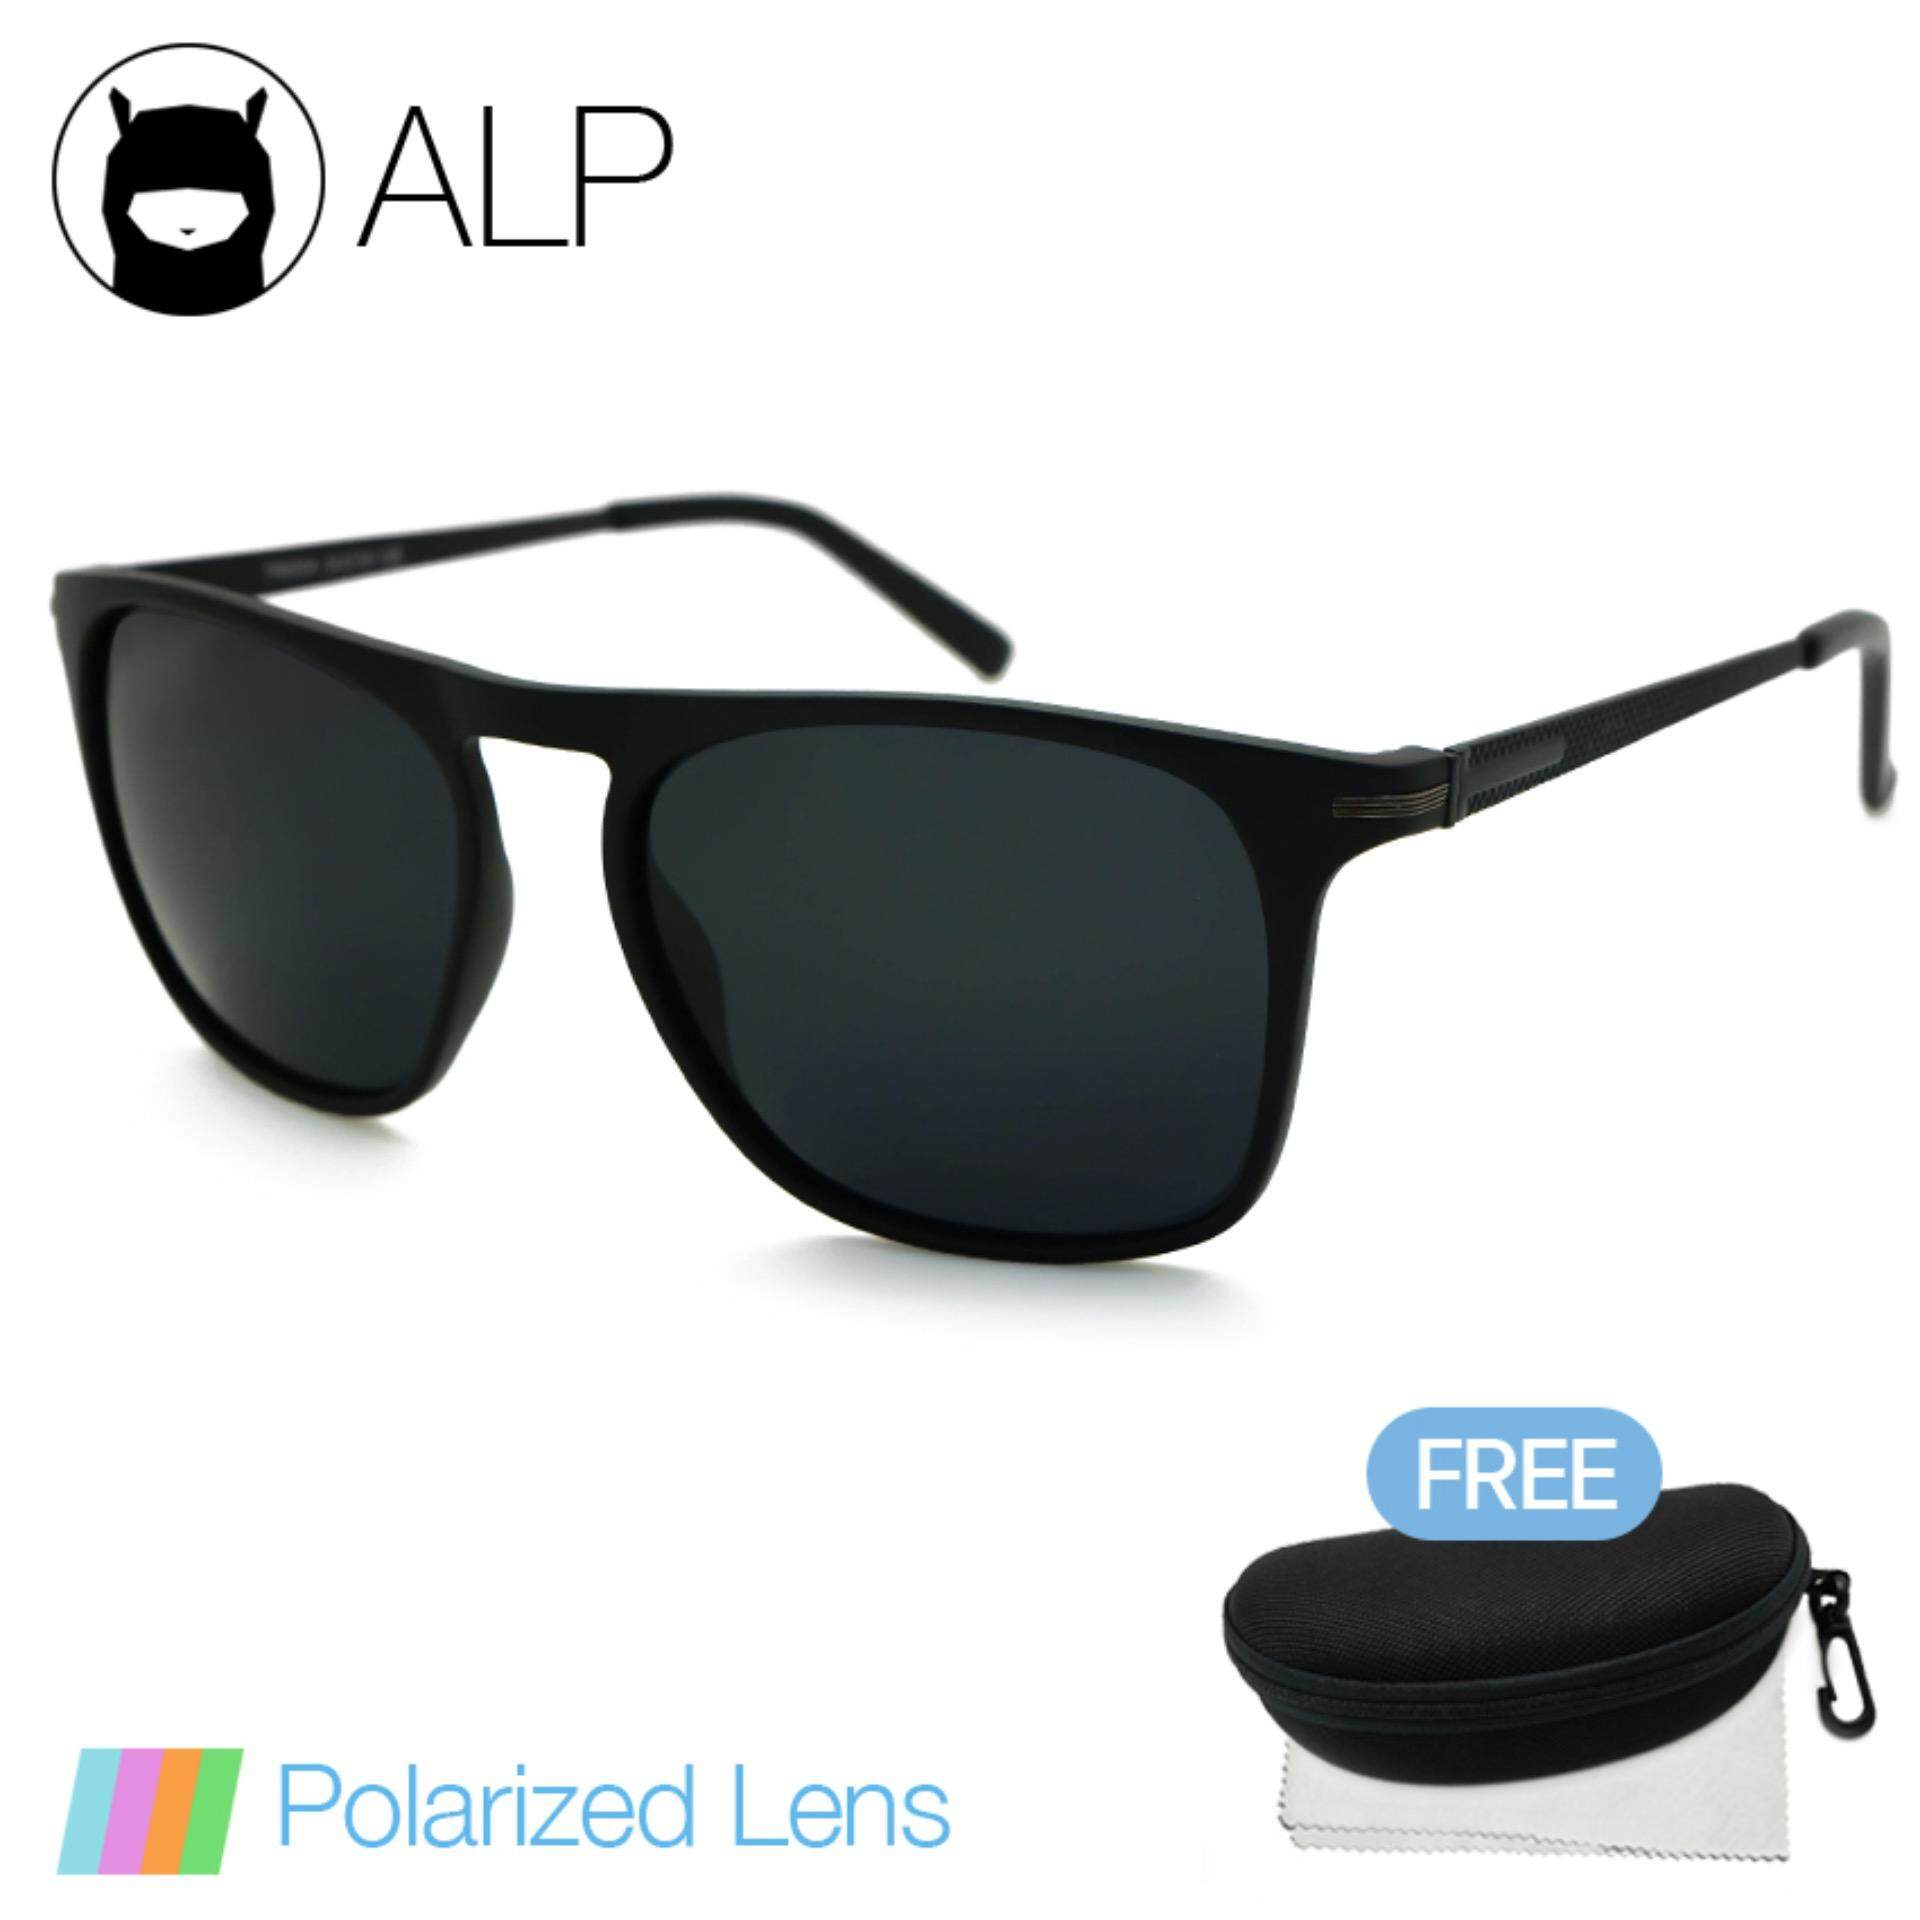 ALP Polarized Sunglasses แว่นกันแดด Wayfarer Style รุ่น ALP-0091-BKT-BKP (Black/Black)